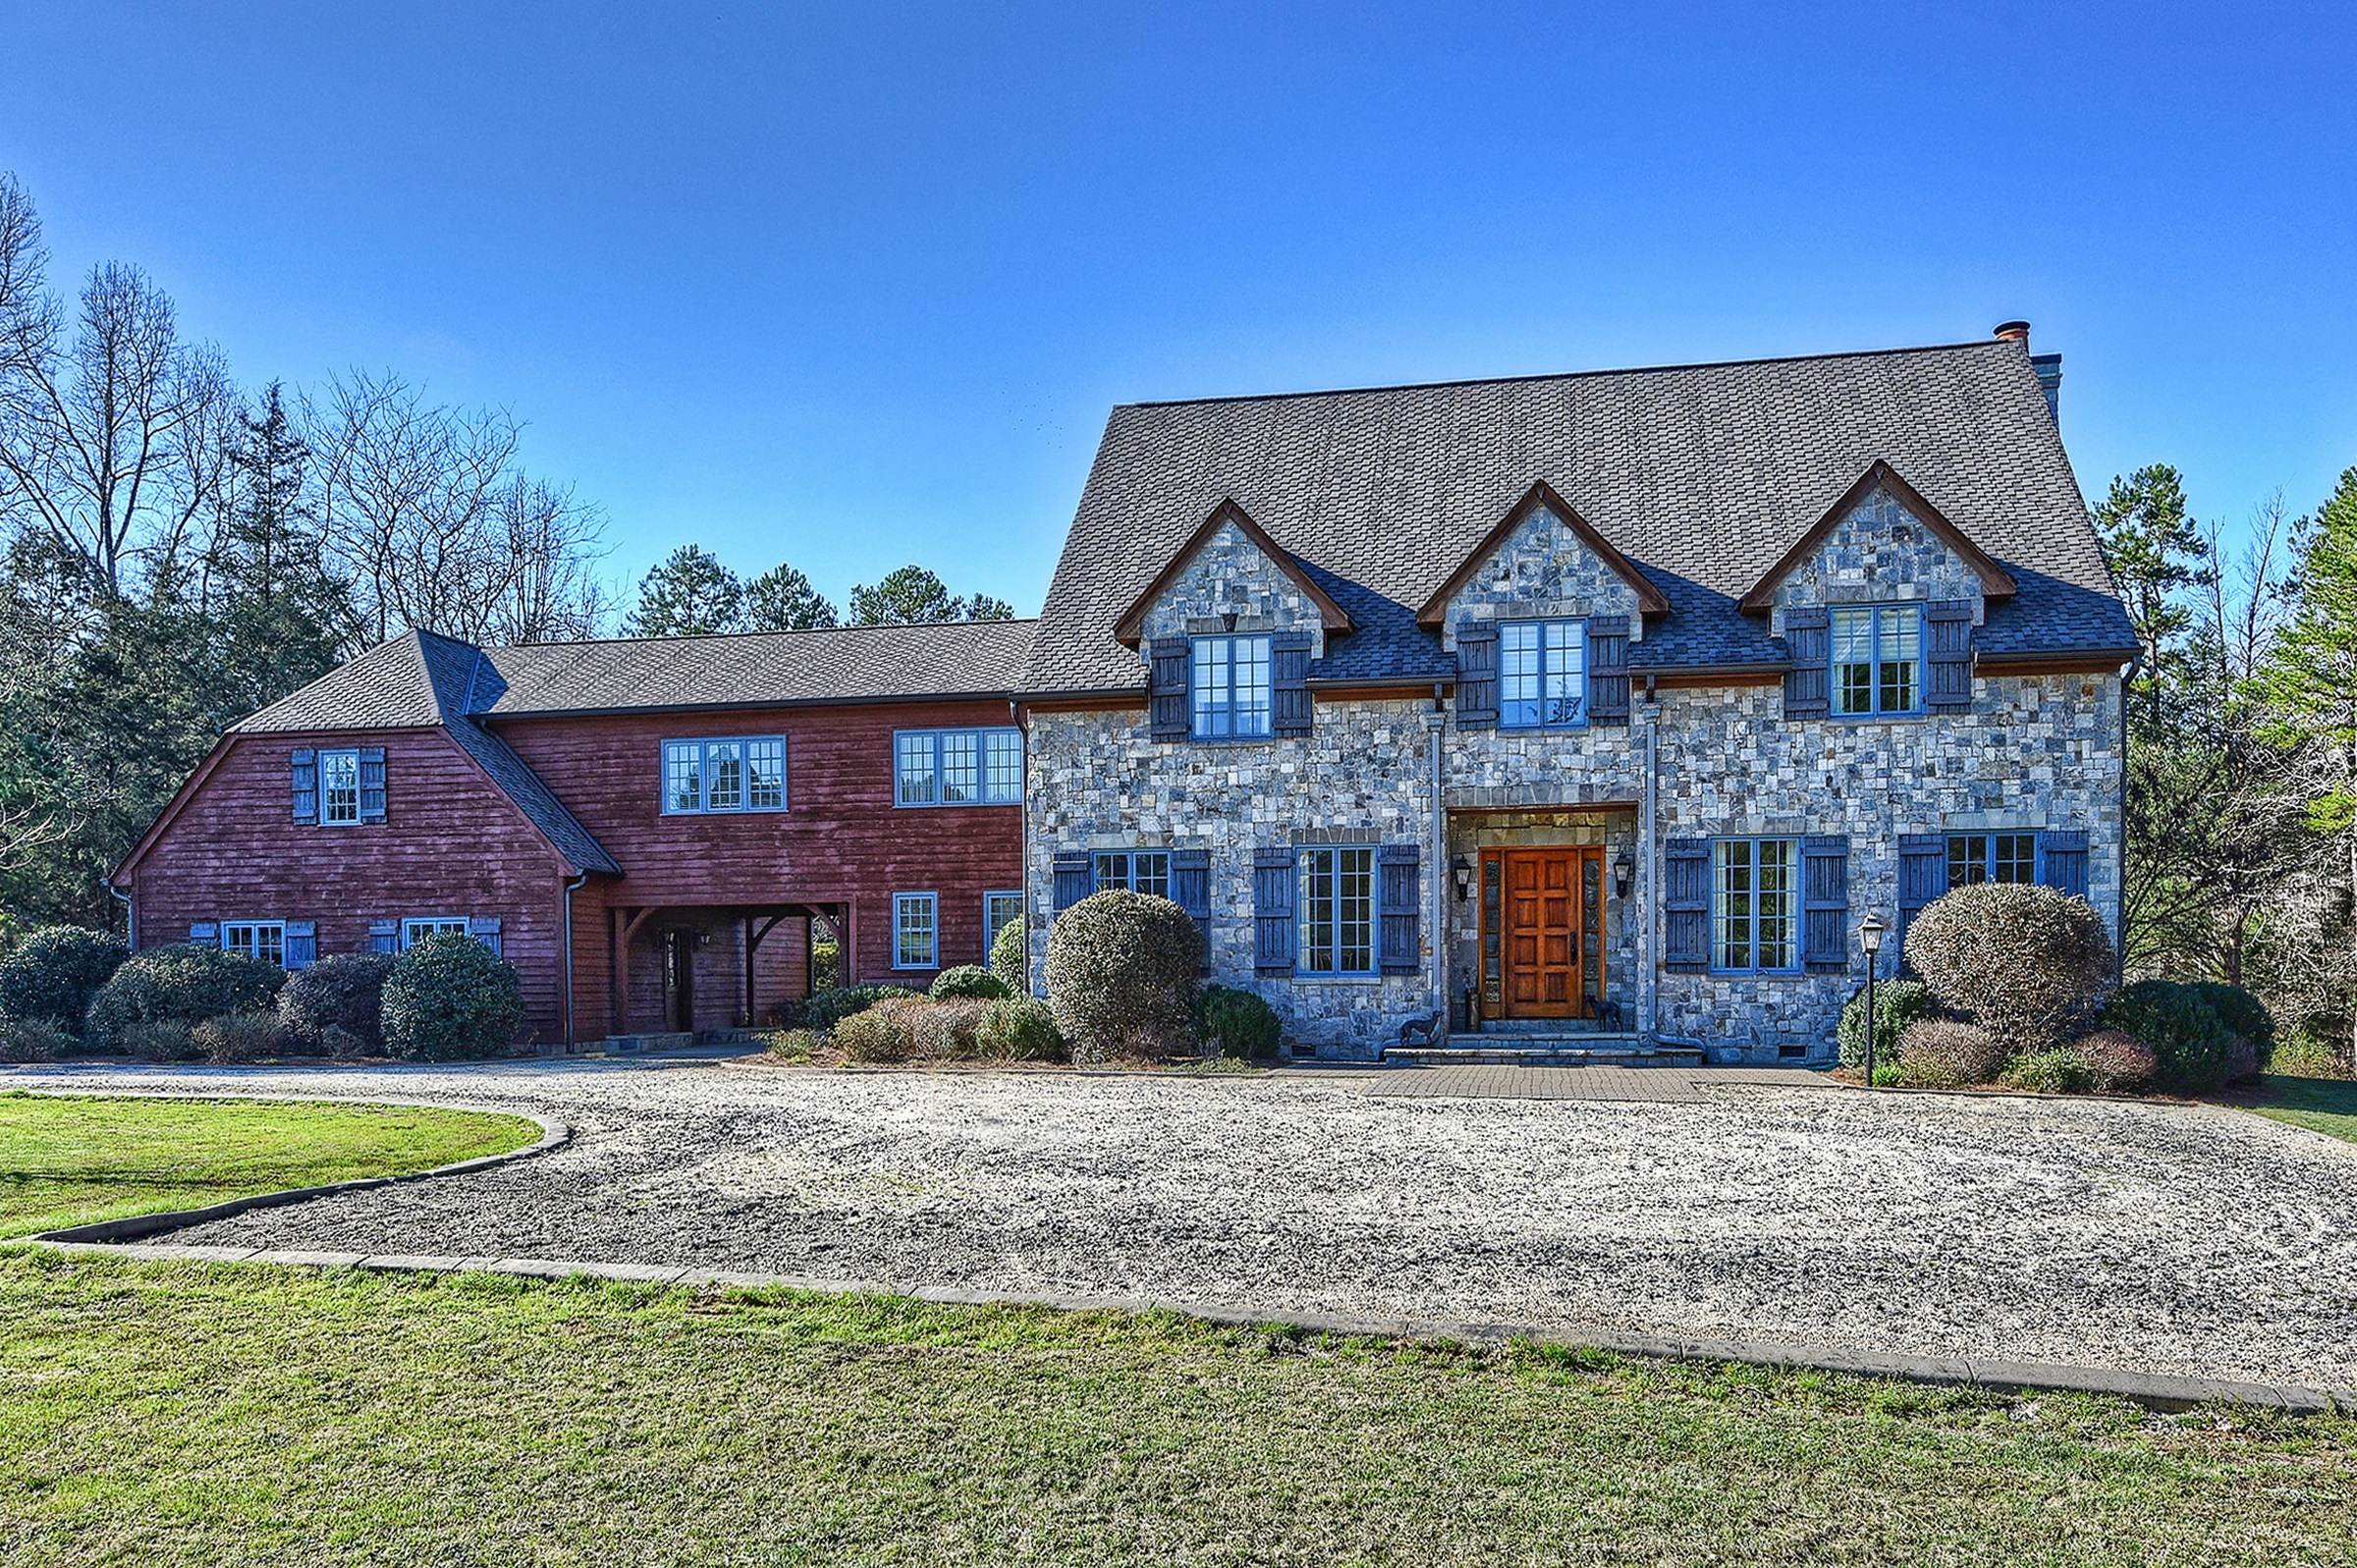 Home Sales On The Rise In Charlotte